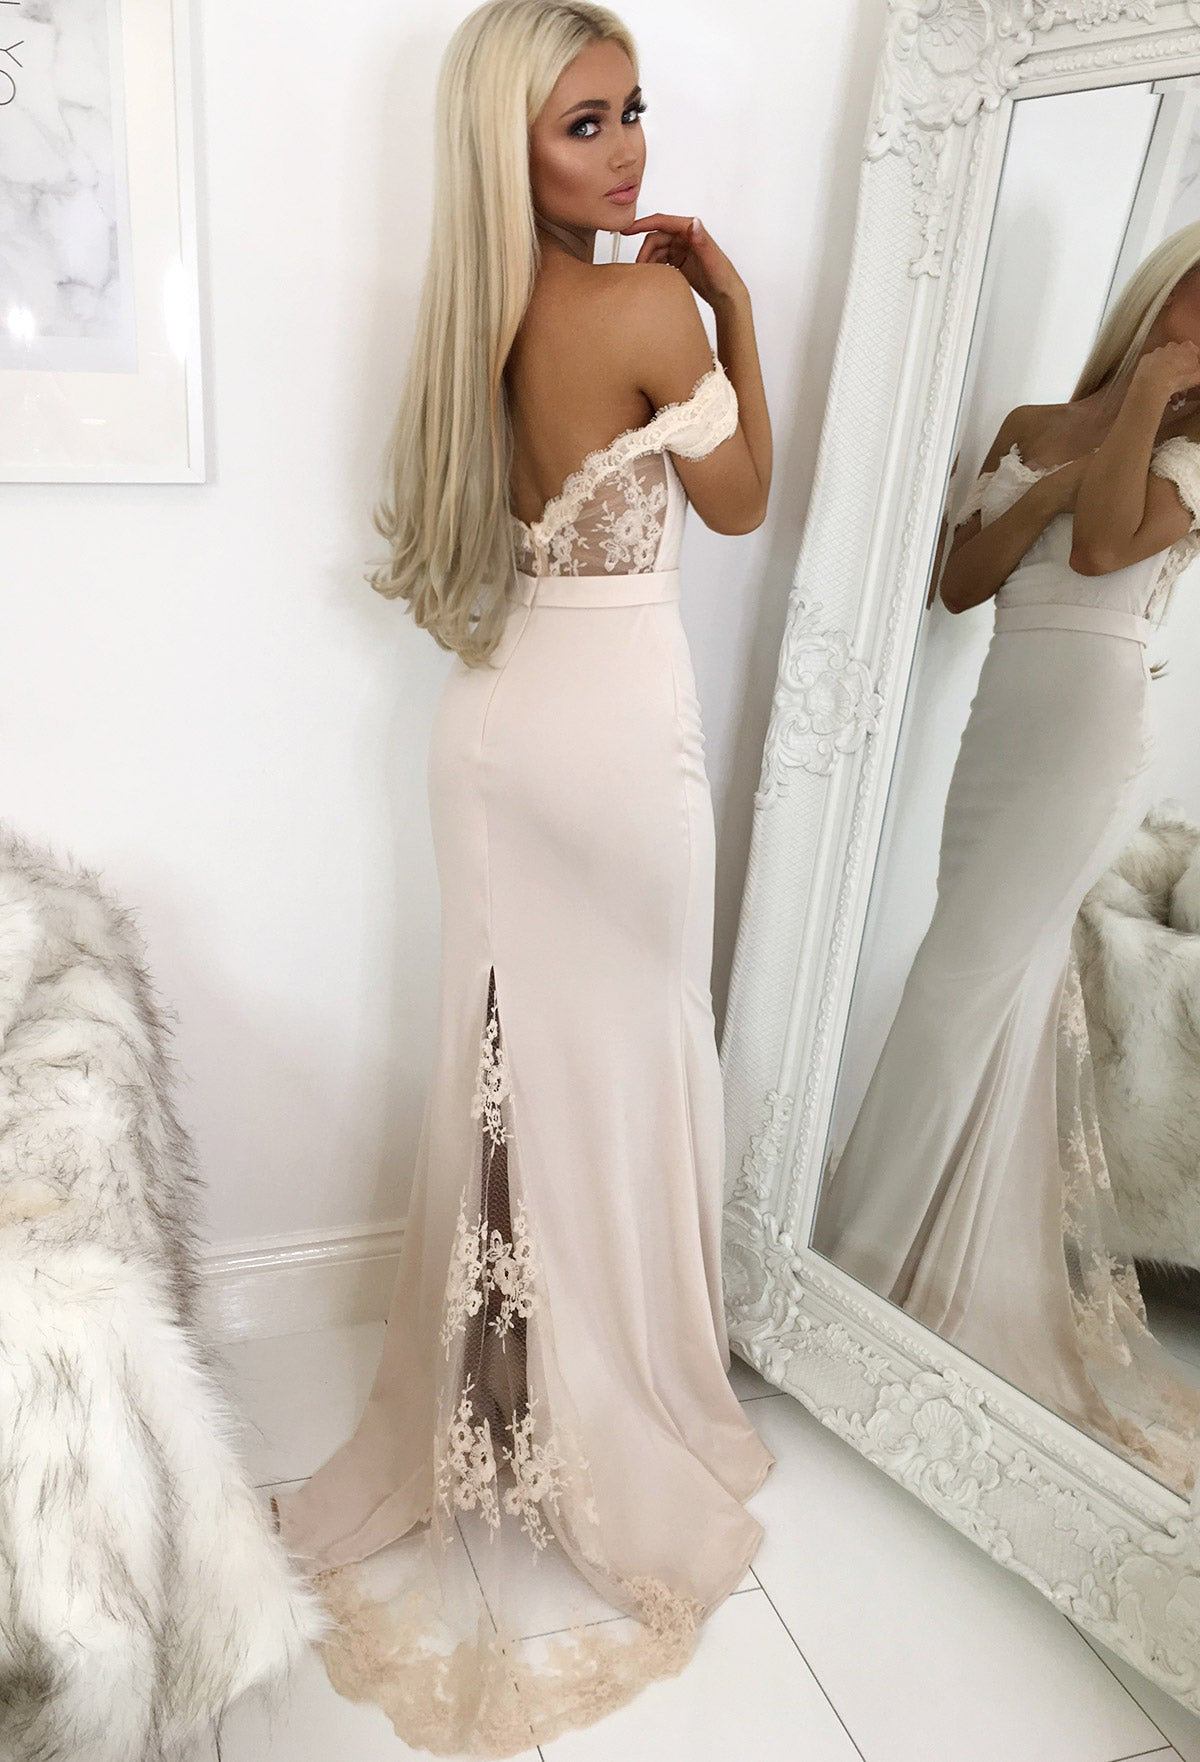 b7da691f6bfc Sweet Elegance Nude Lace Bardot Maxi Dress – Pink Boutique UK